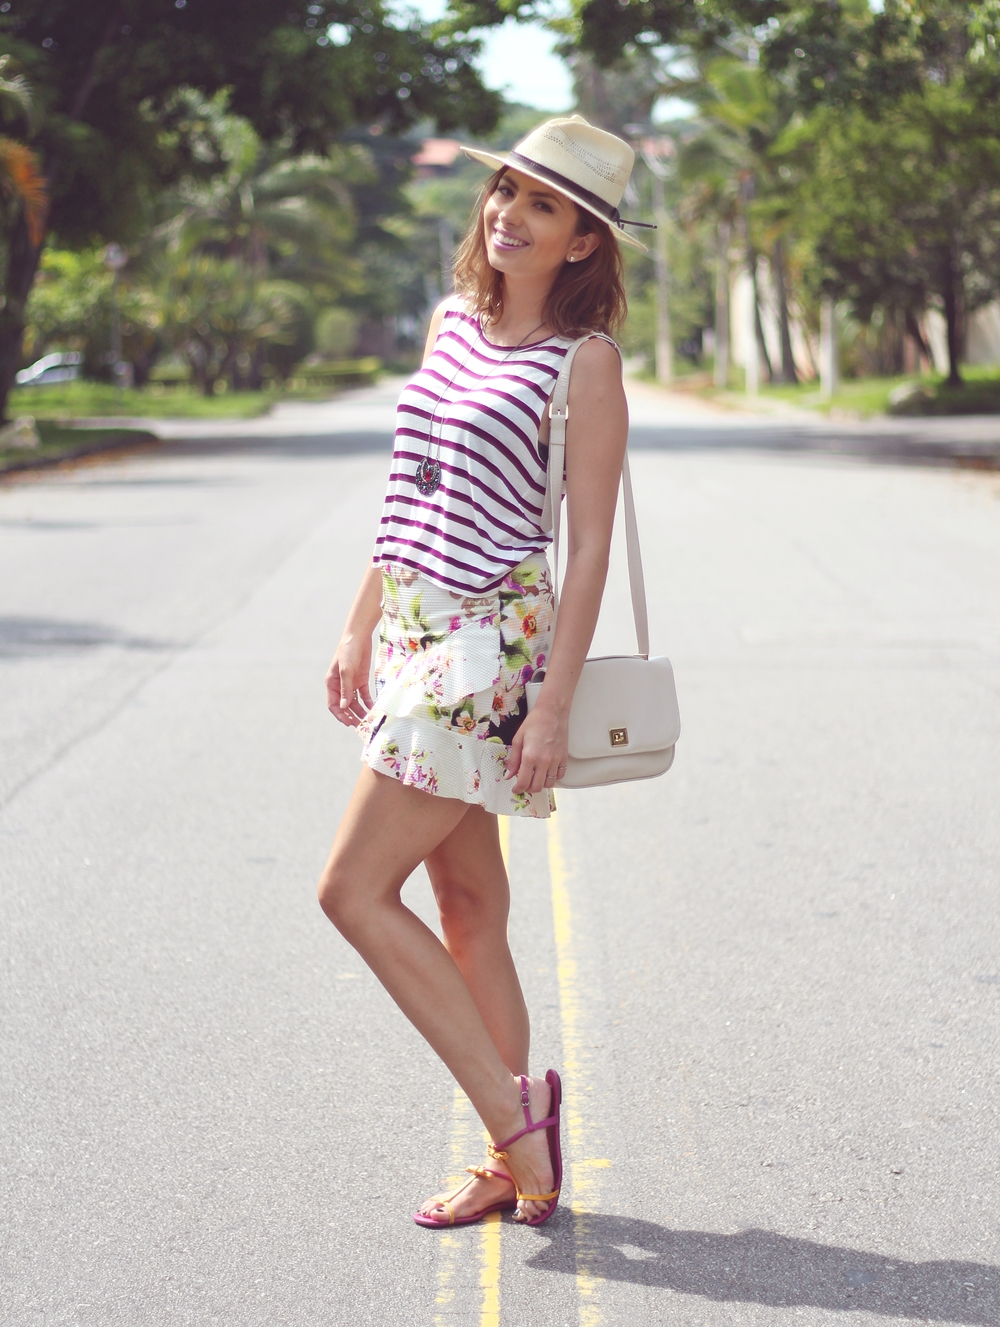 vanduarte-mix-estampas-listras-floral-look3-4